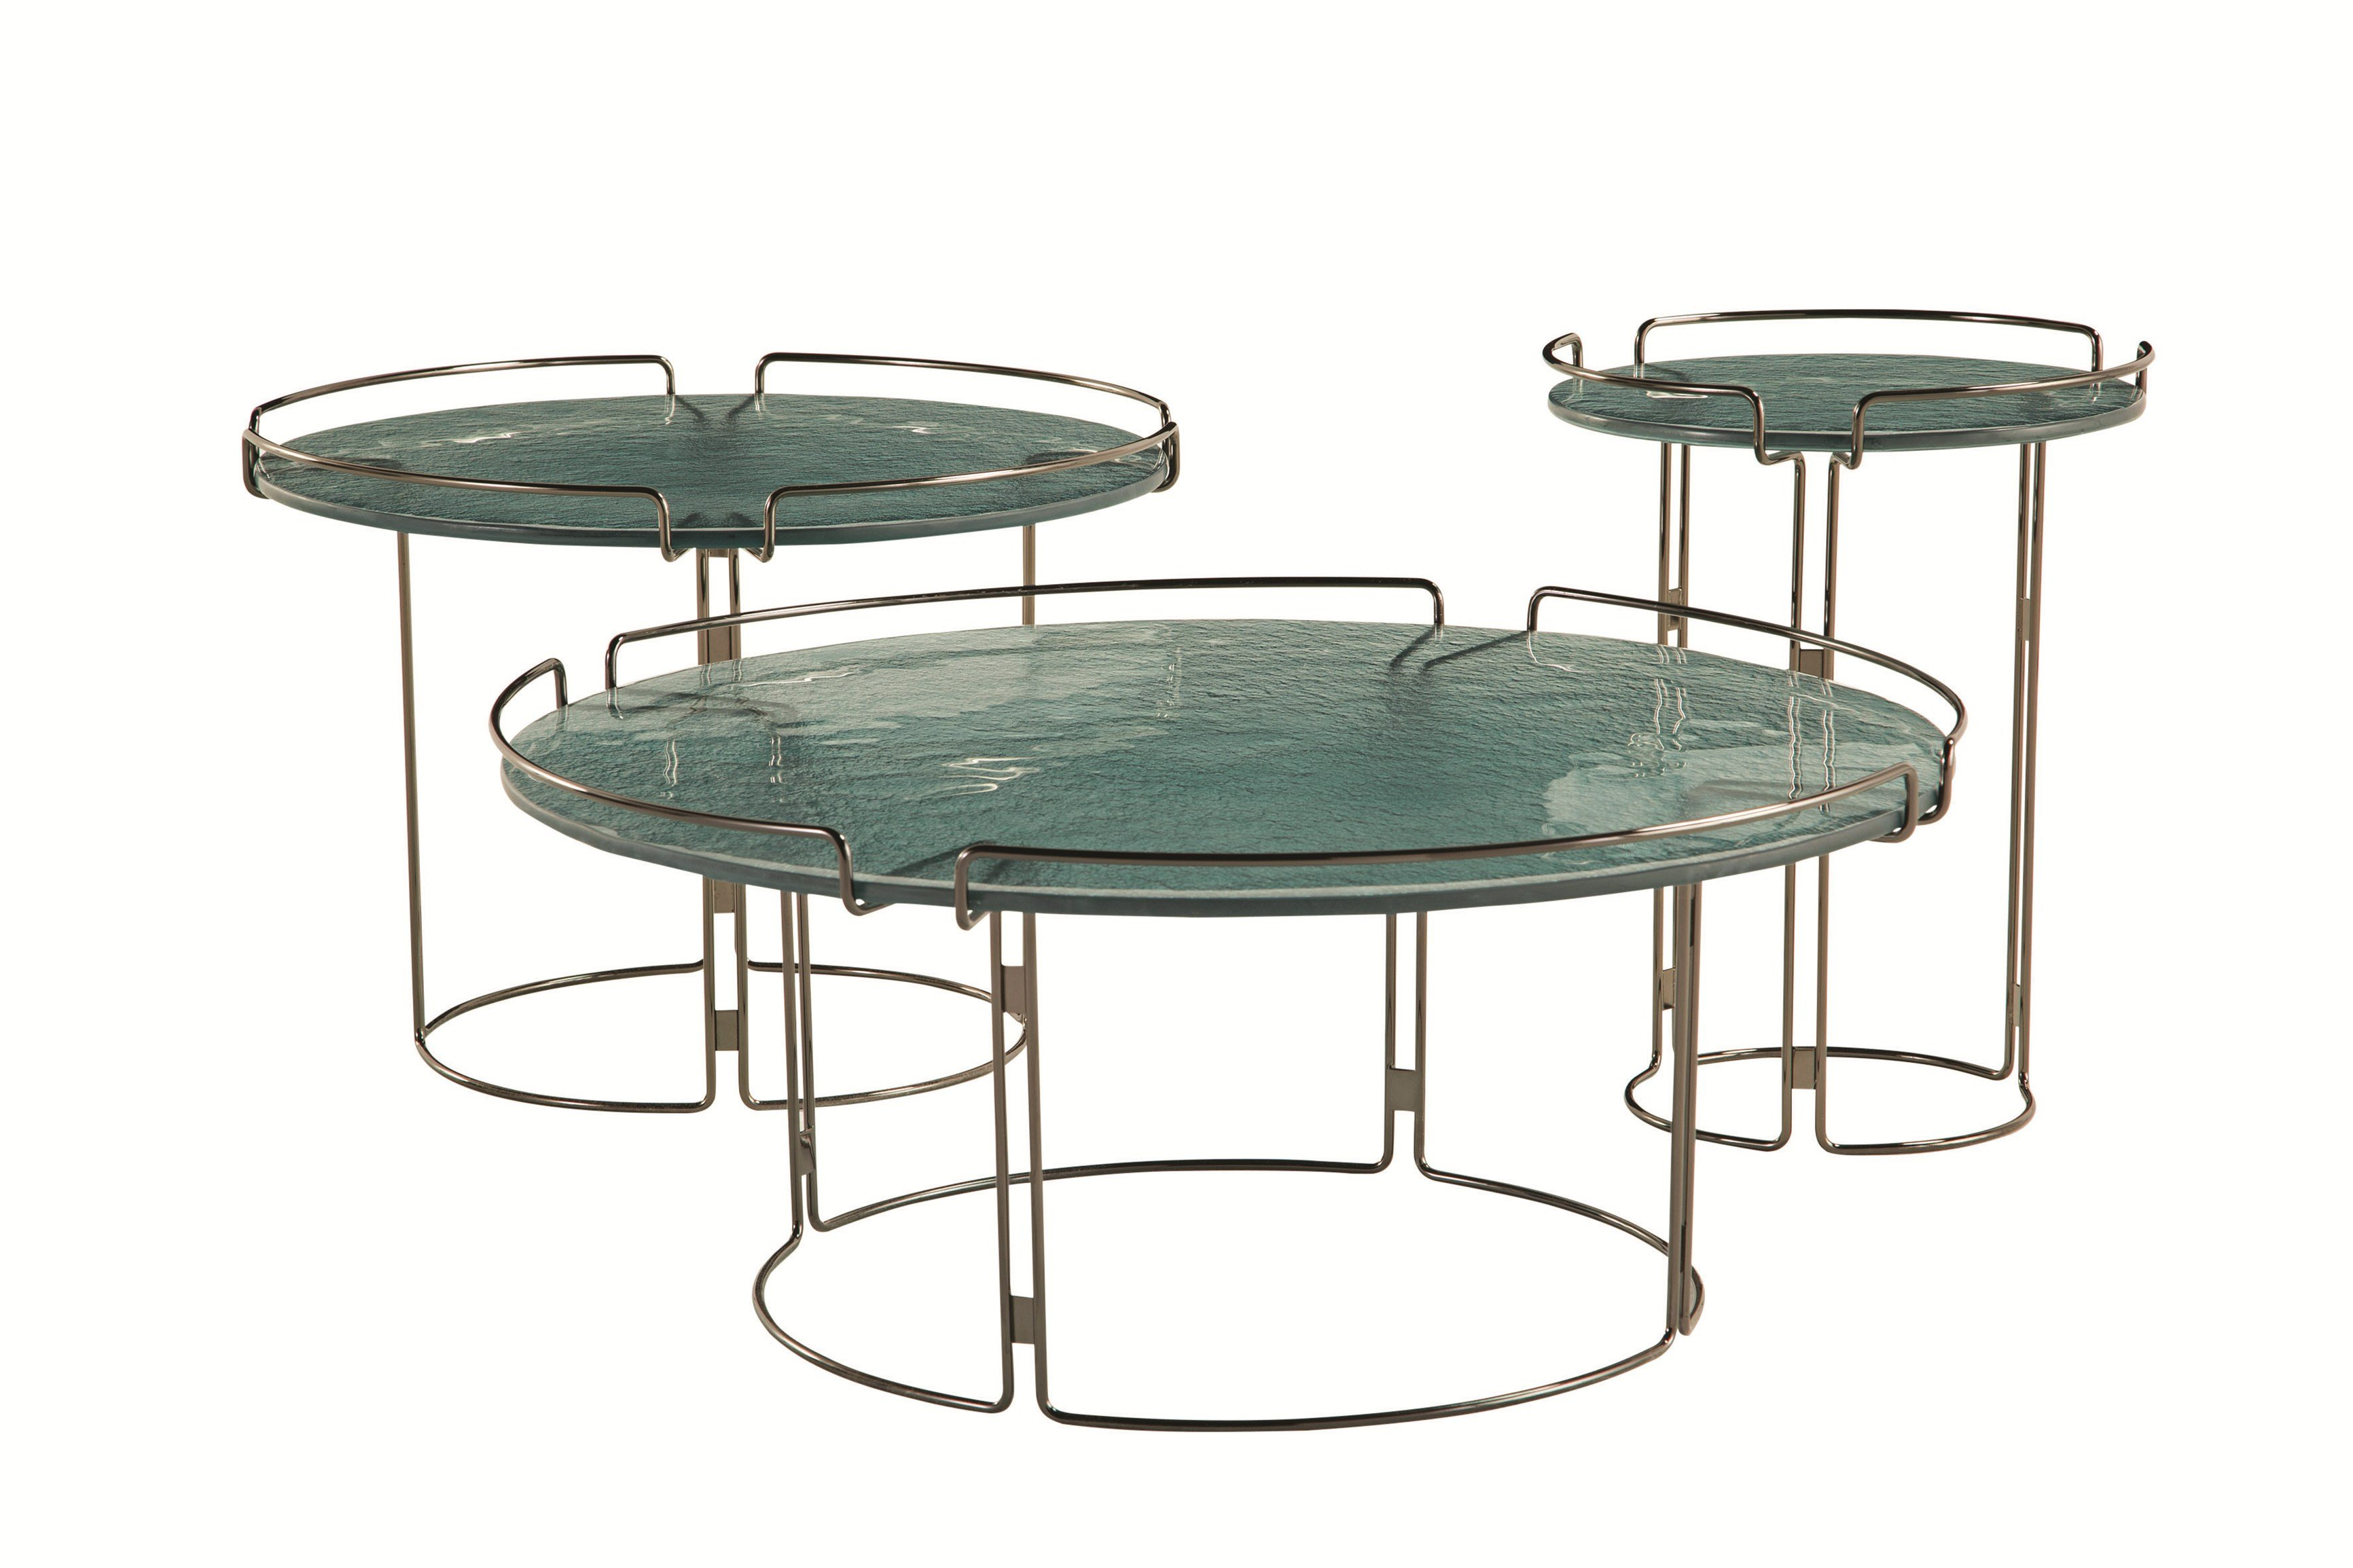 table basse ronde en marbre bijou by roche bobois design fabrice berrux. Black Bedroom Furniture Sets. Home Design Ideas